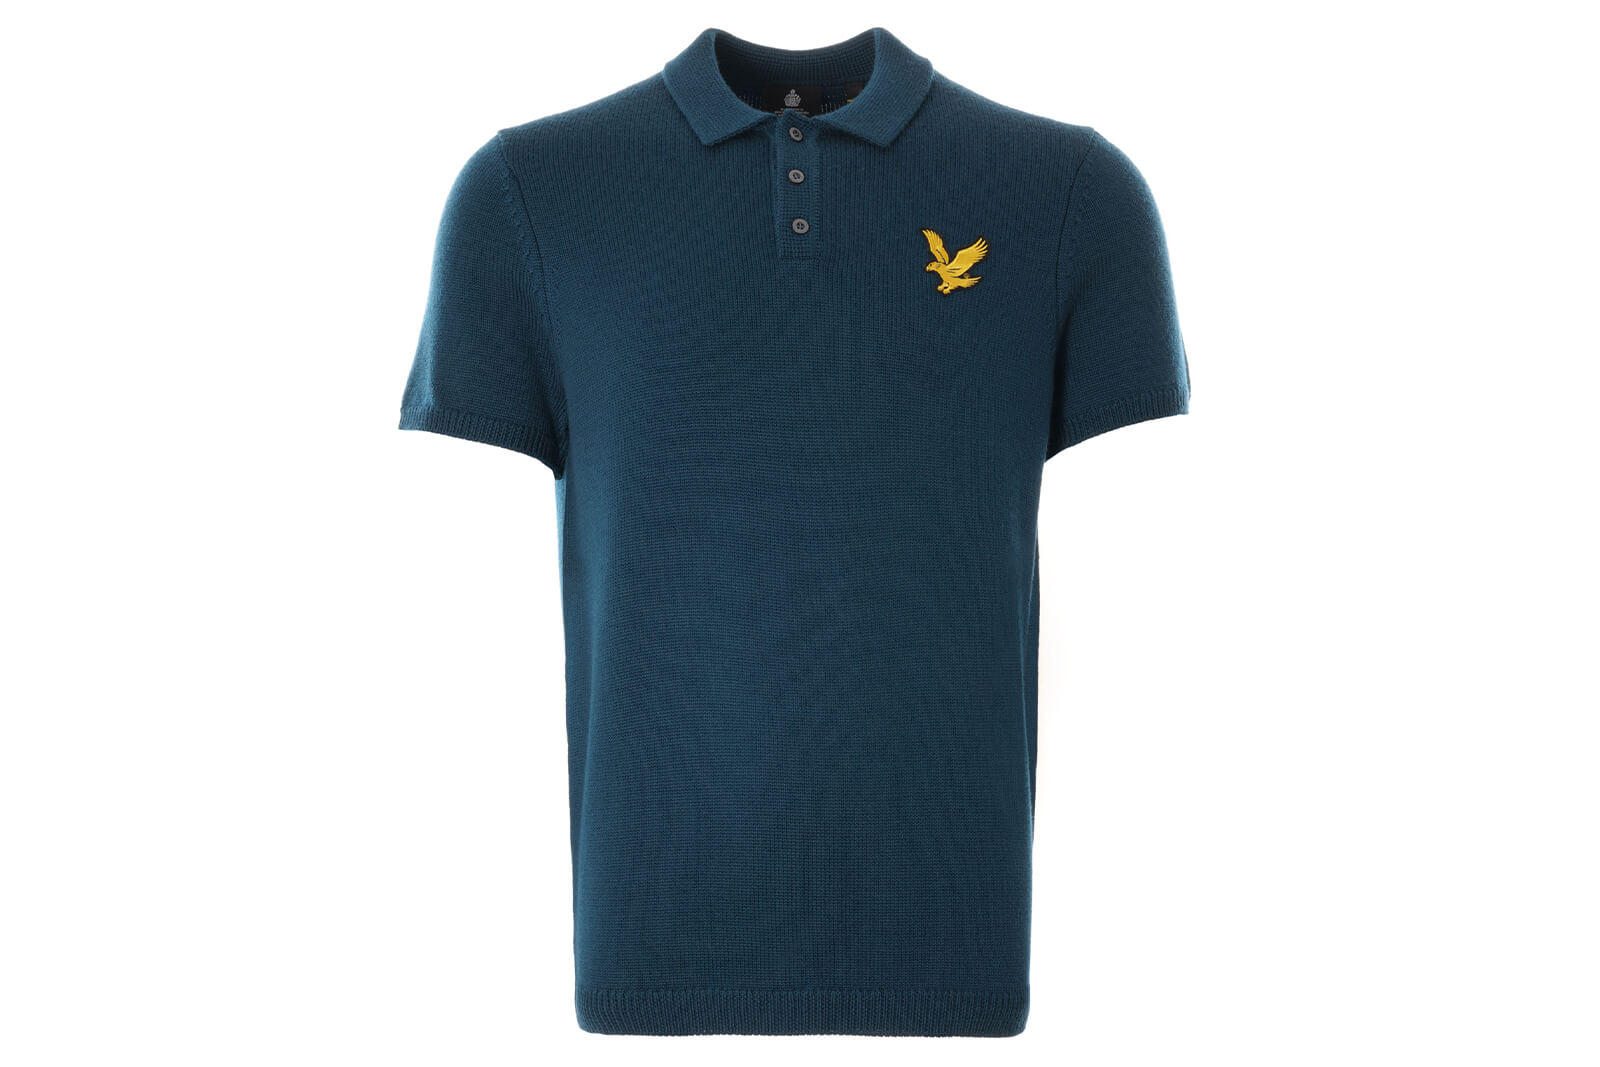 Lyle & Scott X Stuarts London